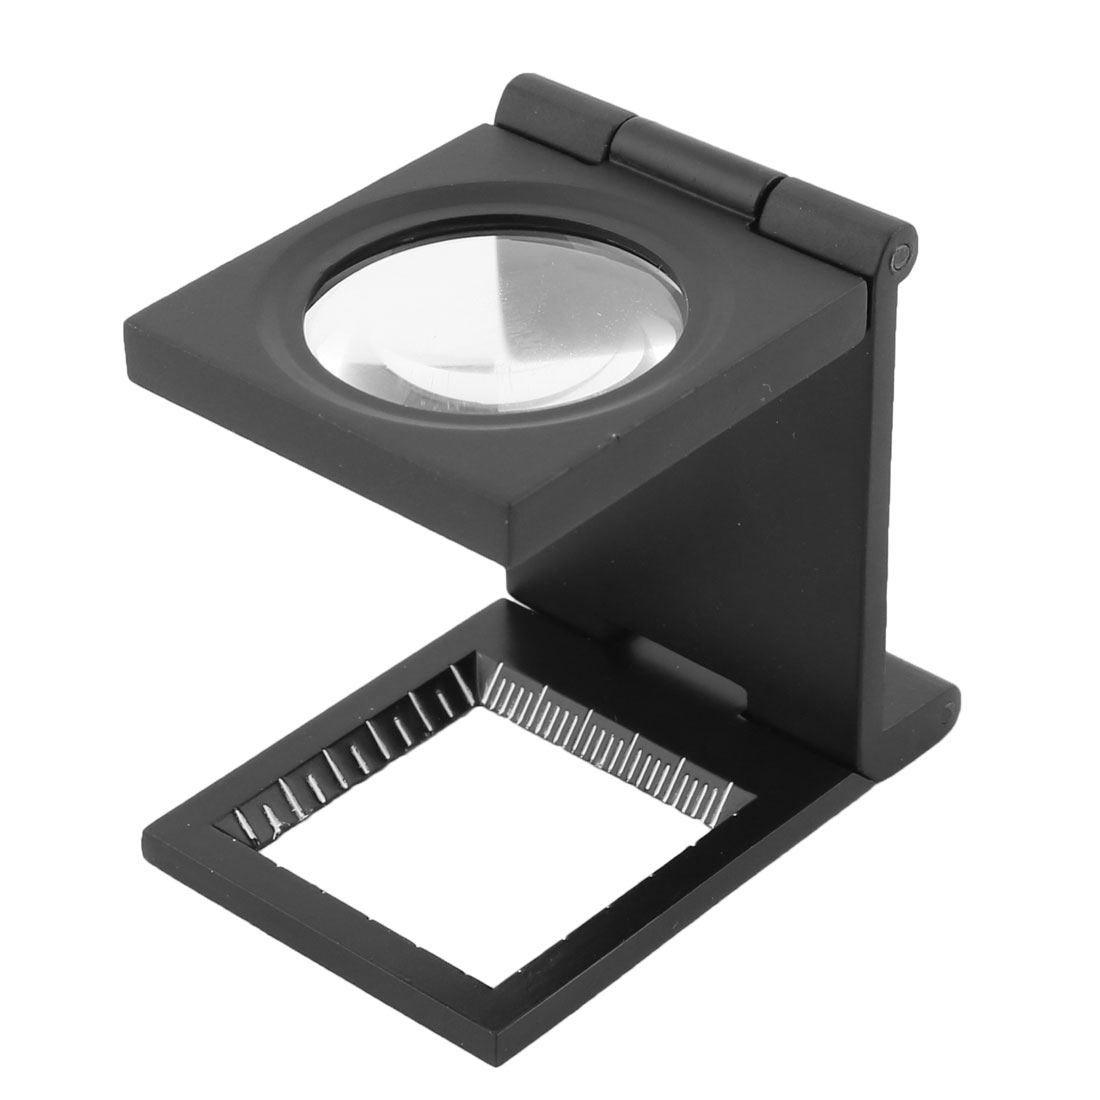 Metal Frame Folding Magnifier Measure Scale 5X Magnifying Glass Black